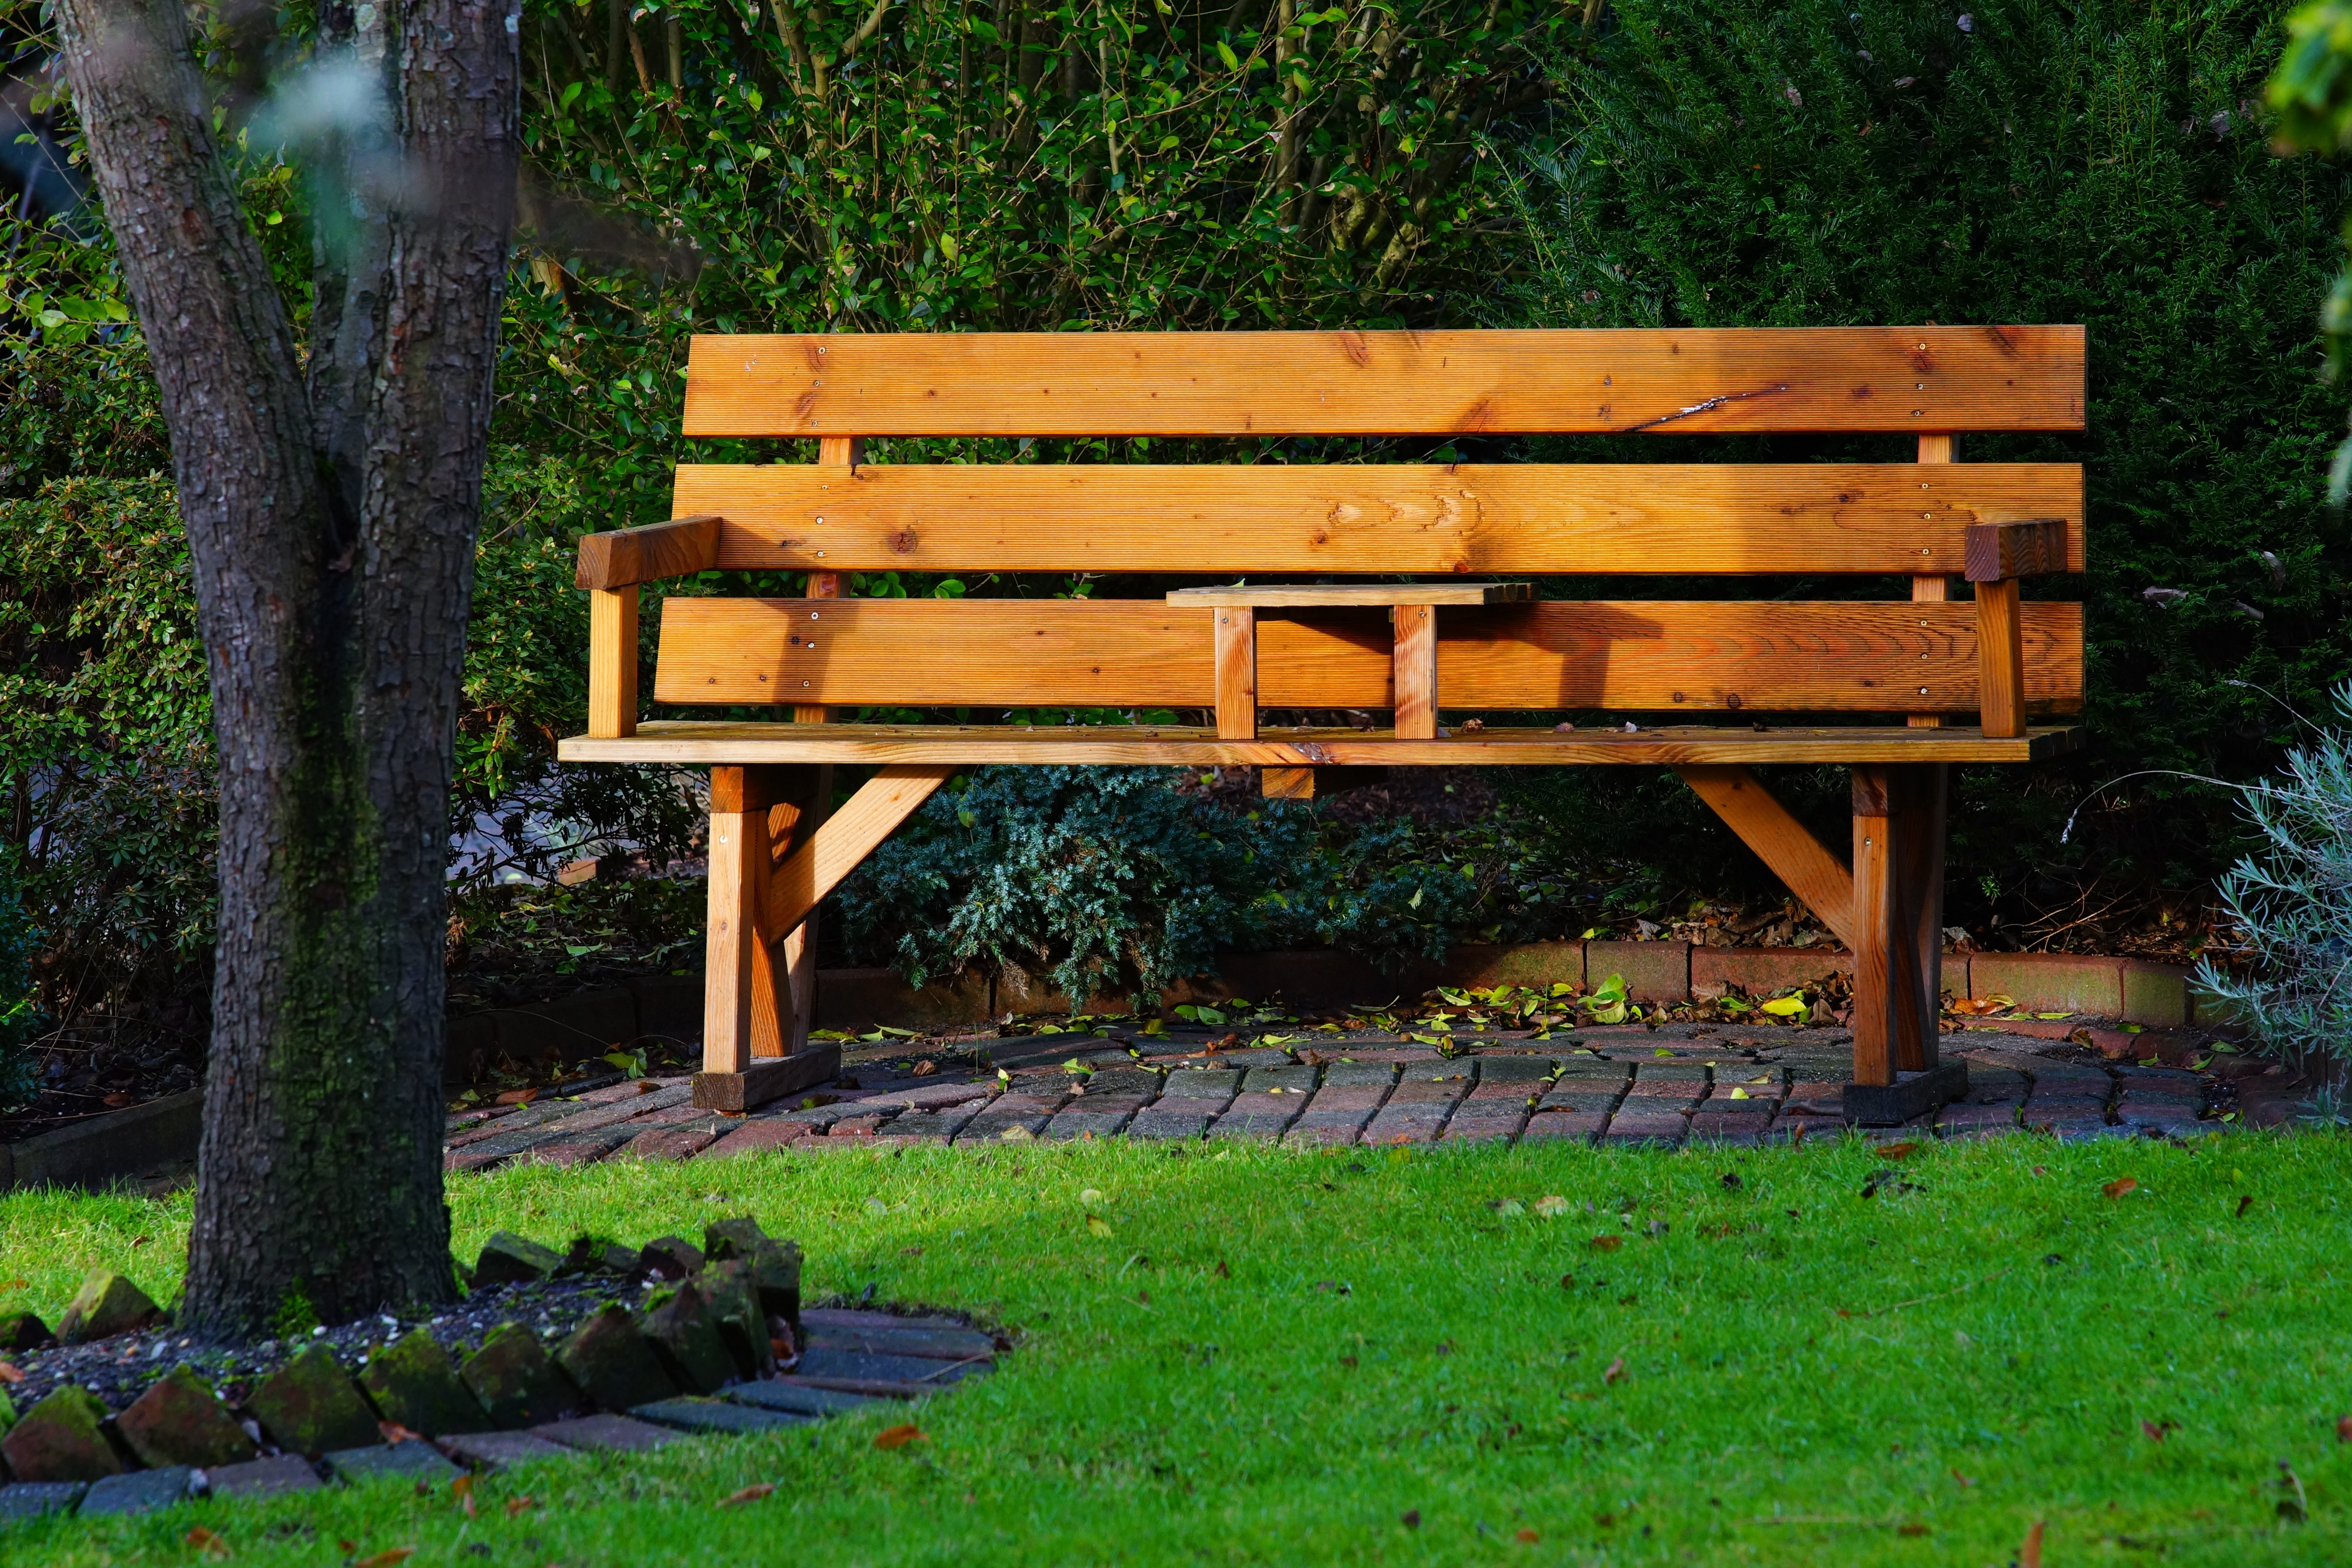 Extra pressure-treated wood can be used to make a beautiful garden bench.